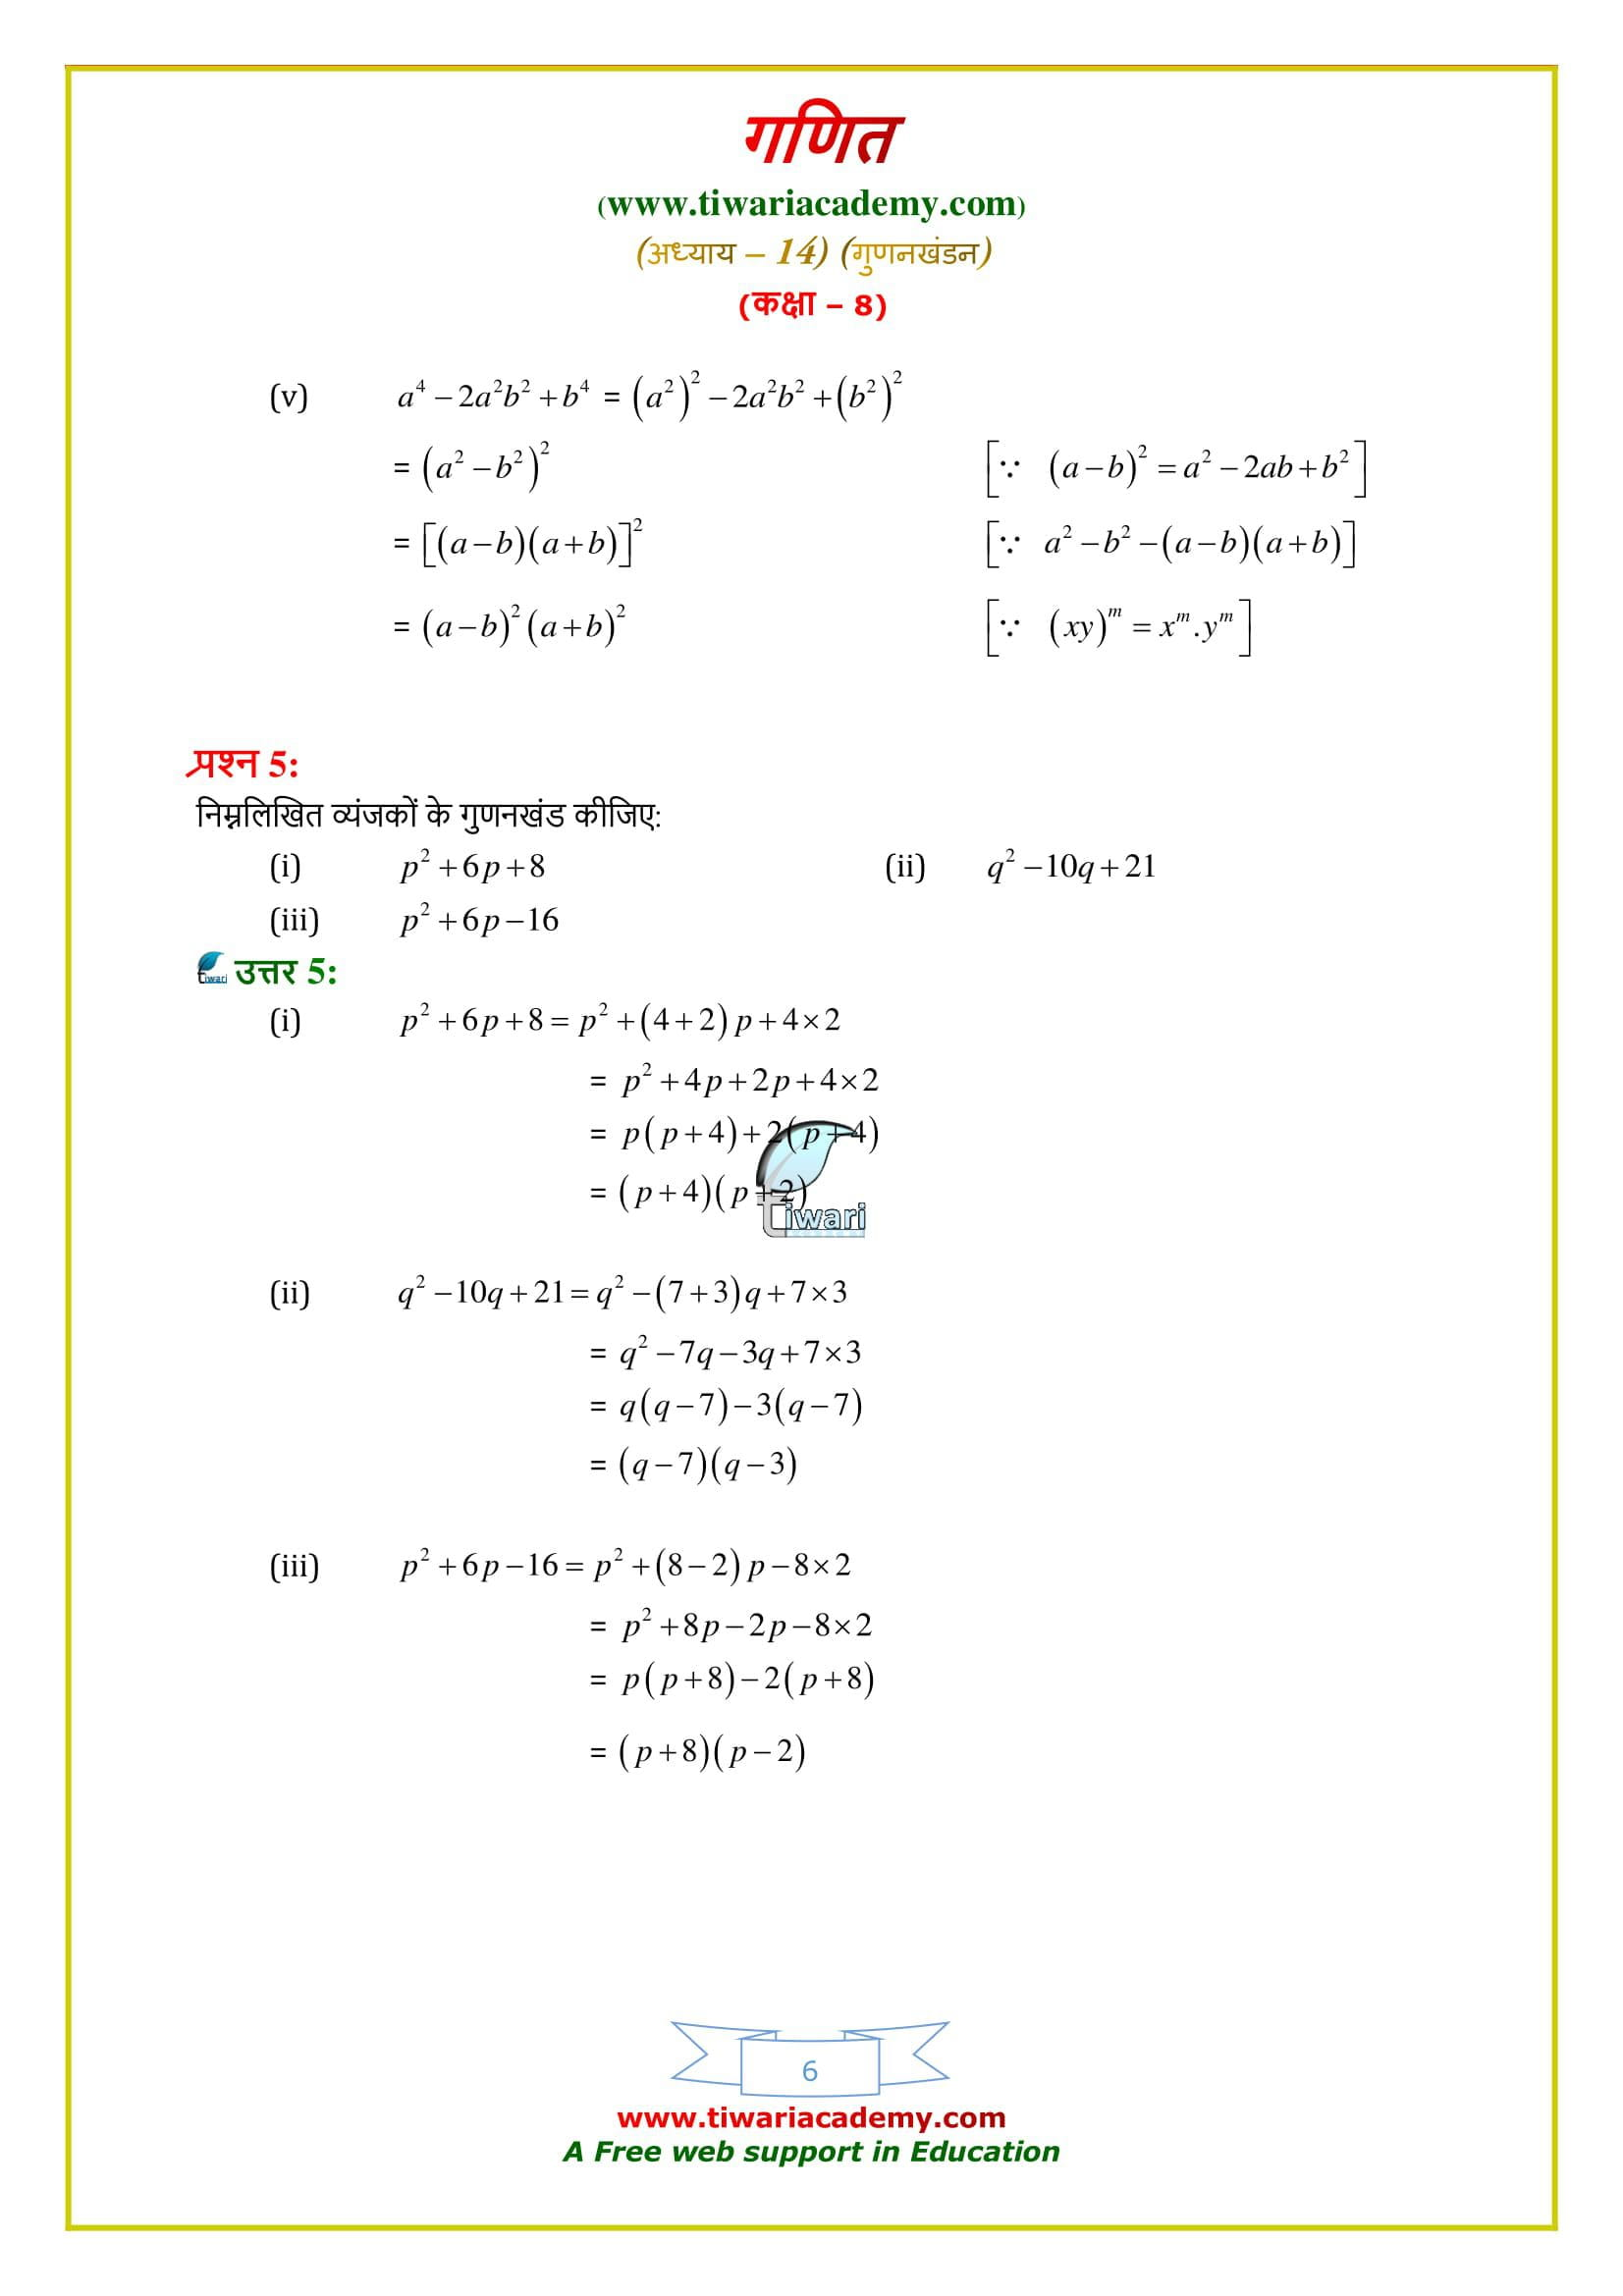 8 Maths Exercise 14.2 solutions for 2018-19 new syllabus